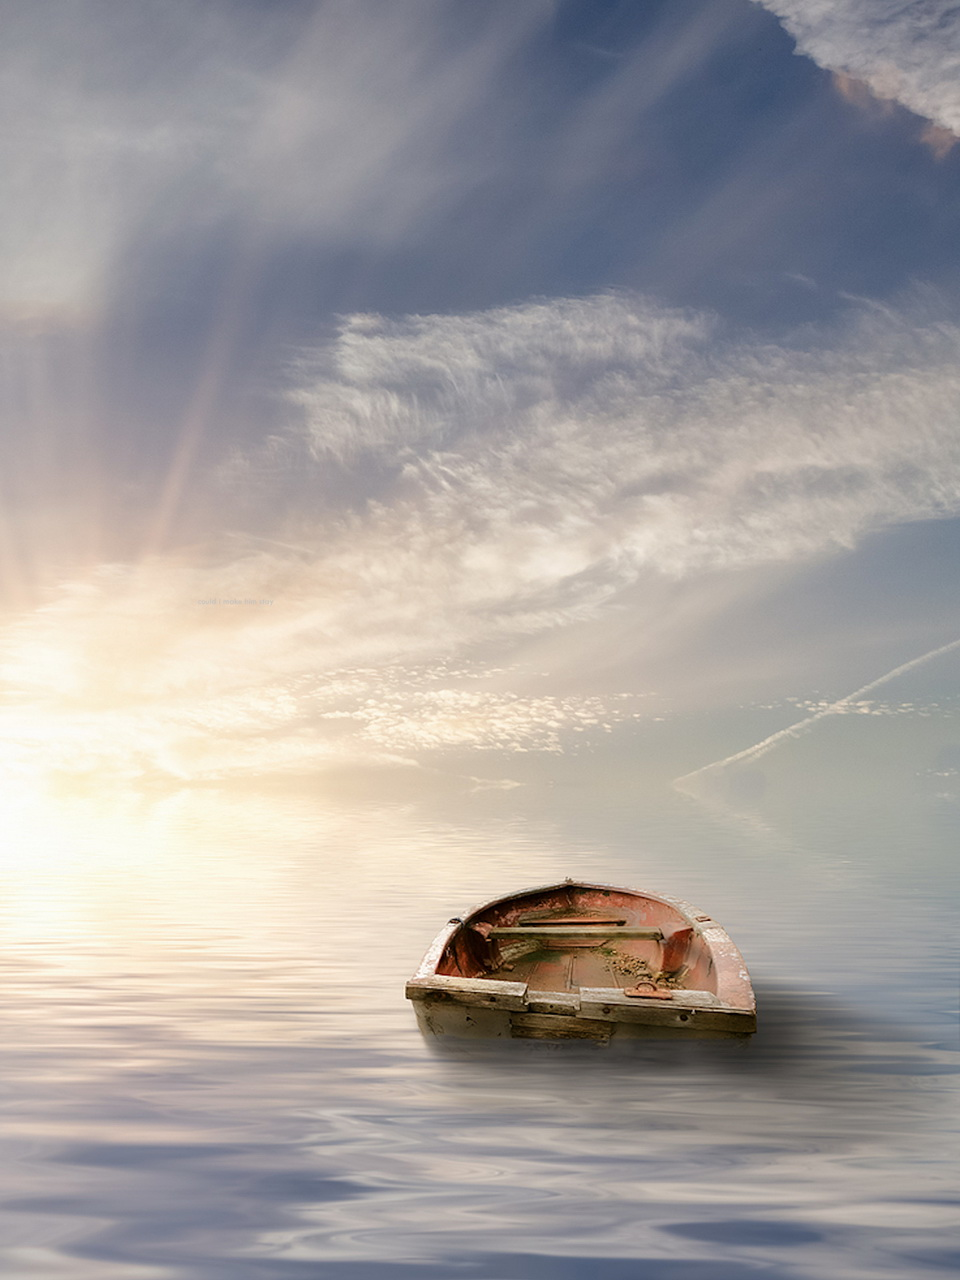 lone row boat in sea with rising sun and big sky